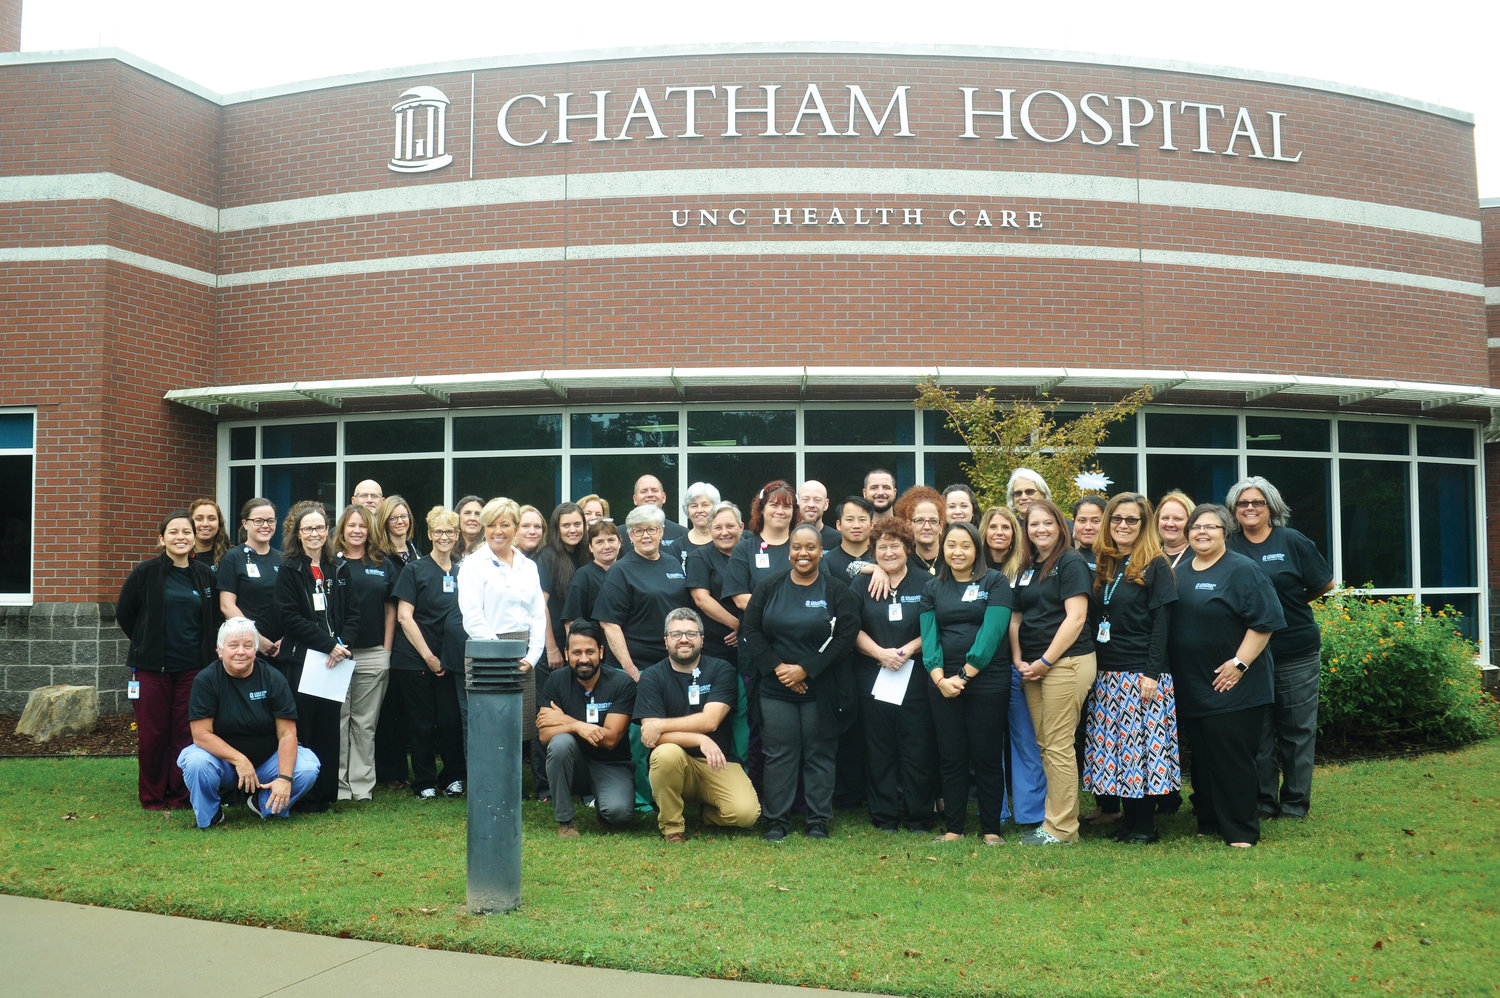 Standing with the team.Caregivers at the Chatham Hospital gathered last Tuesday to reaffirm the statements in the Carolina Care plan. The plan offers specific expectations that are part of the UNC health care systems that are needed for excellent patient care.